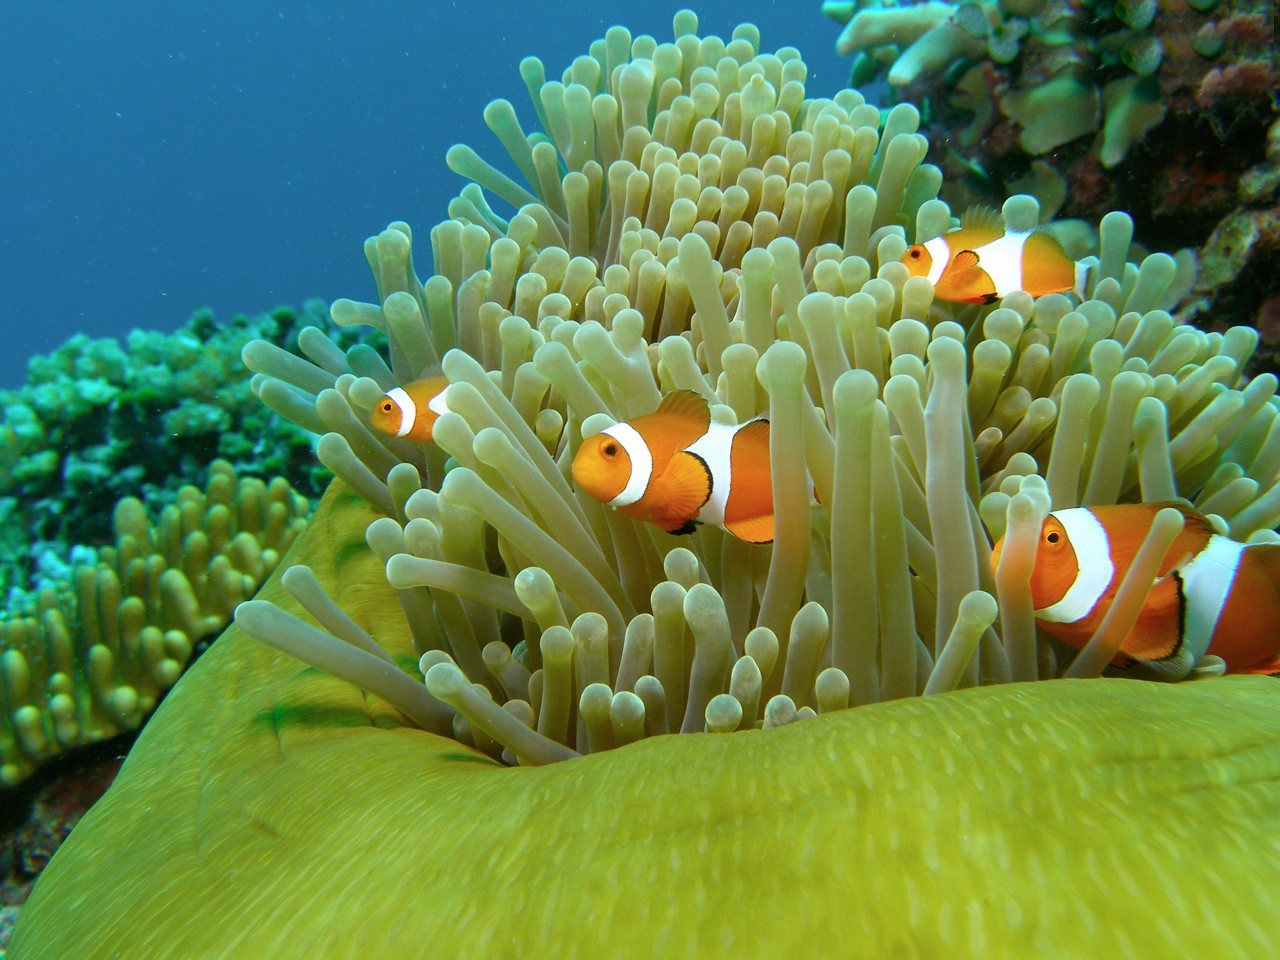 on October 8 2015 By Stephen Comments Off on Clown Fish Wallpapers 1280x960